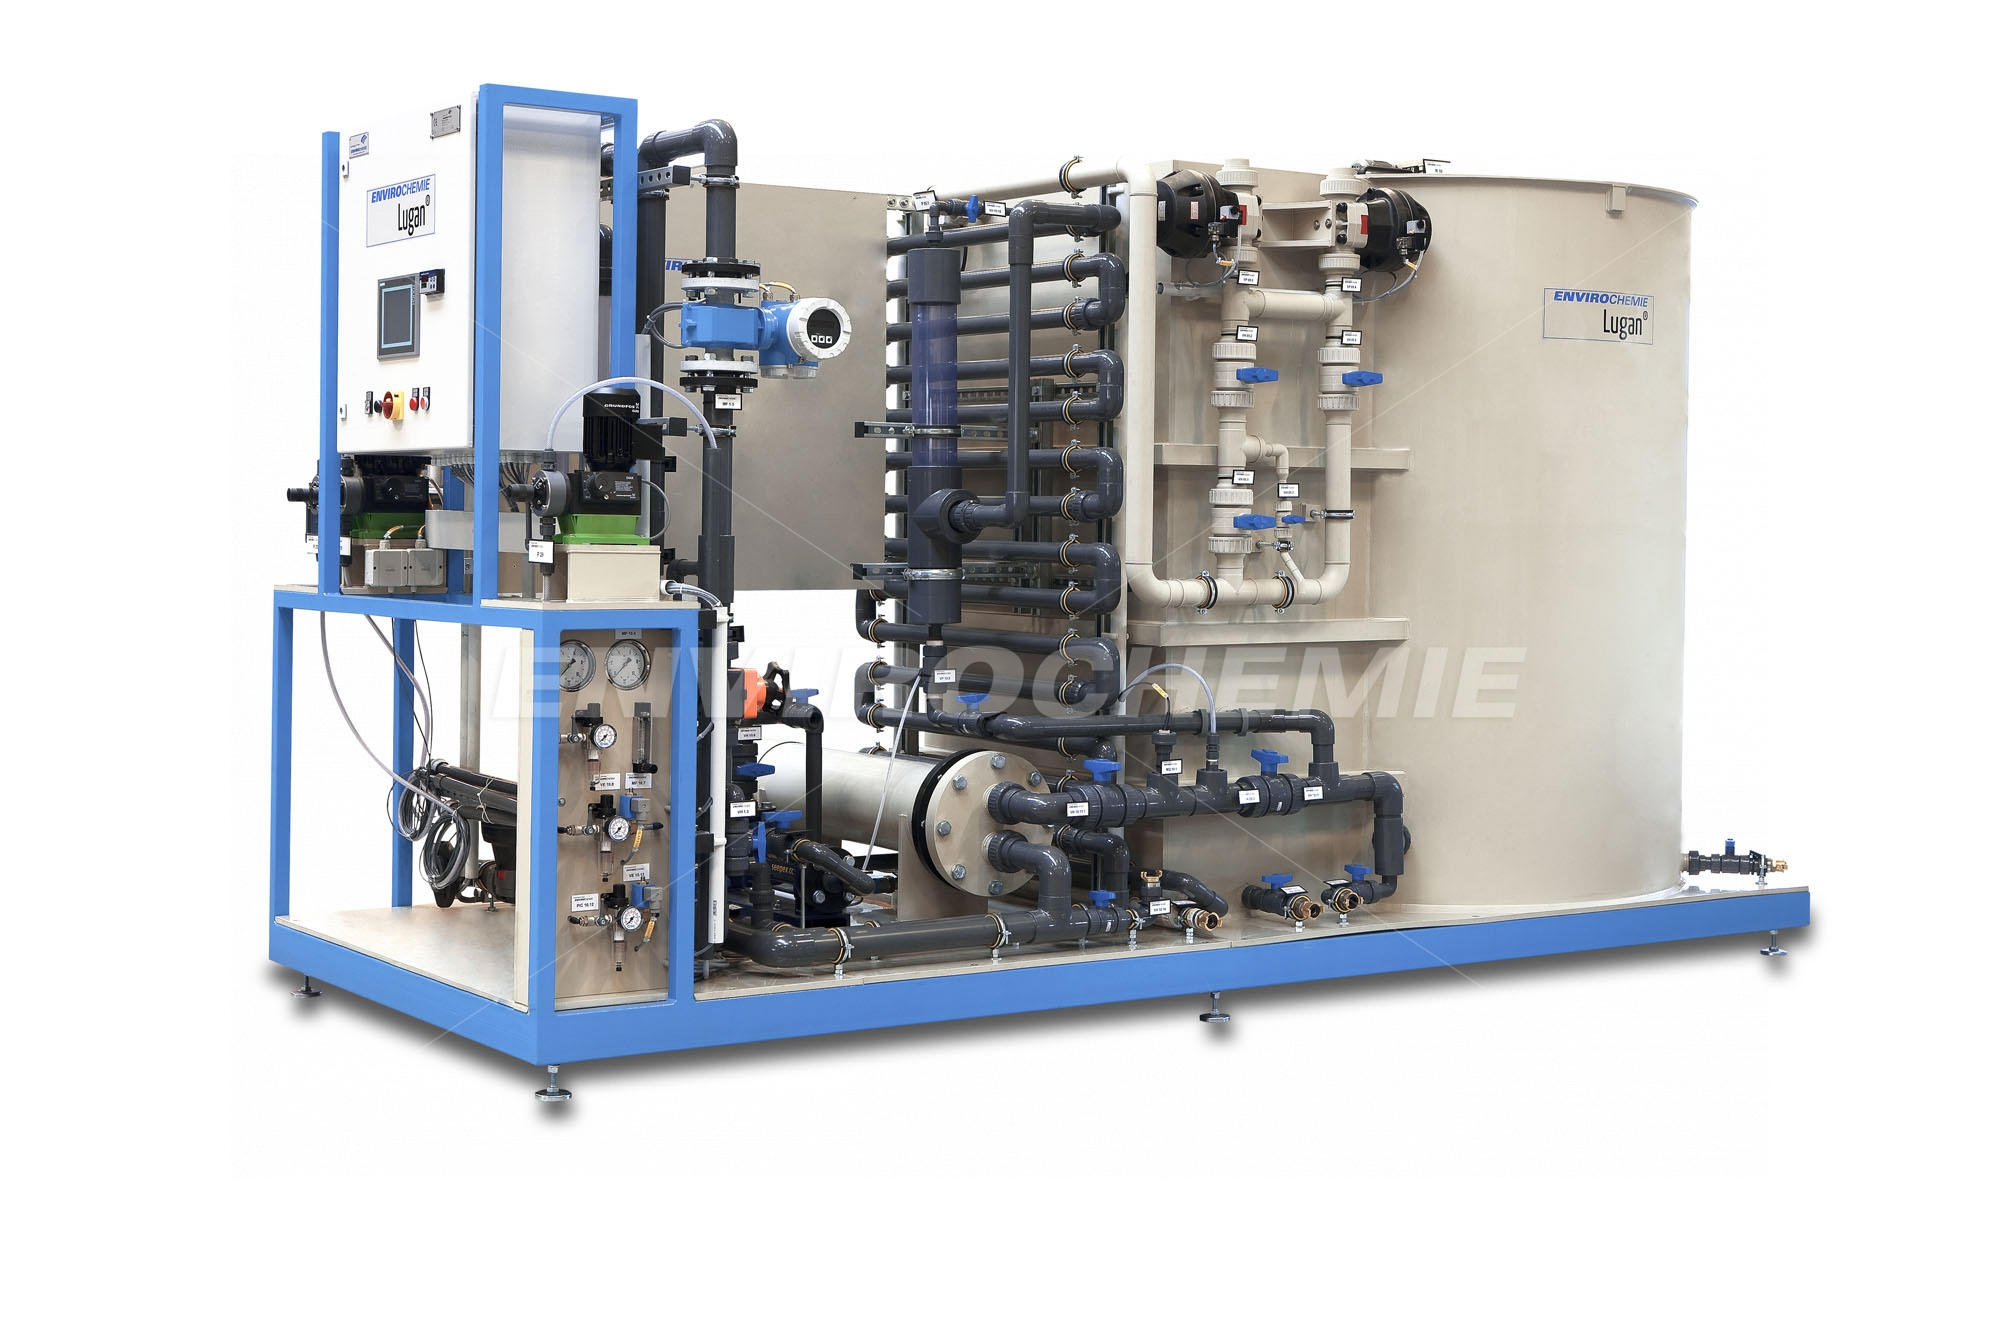 Lugan® 10000 flotation plants have been developed